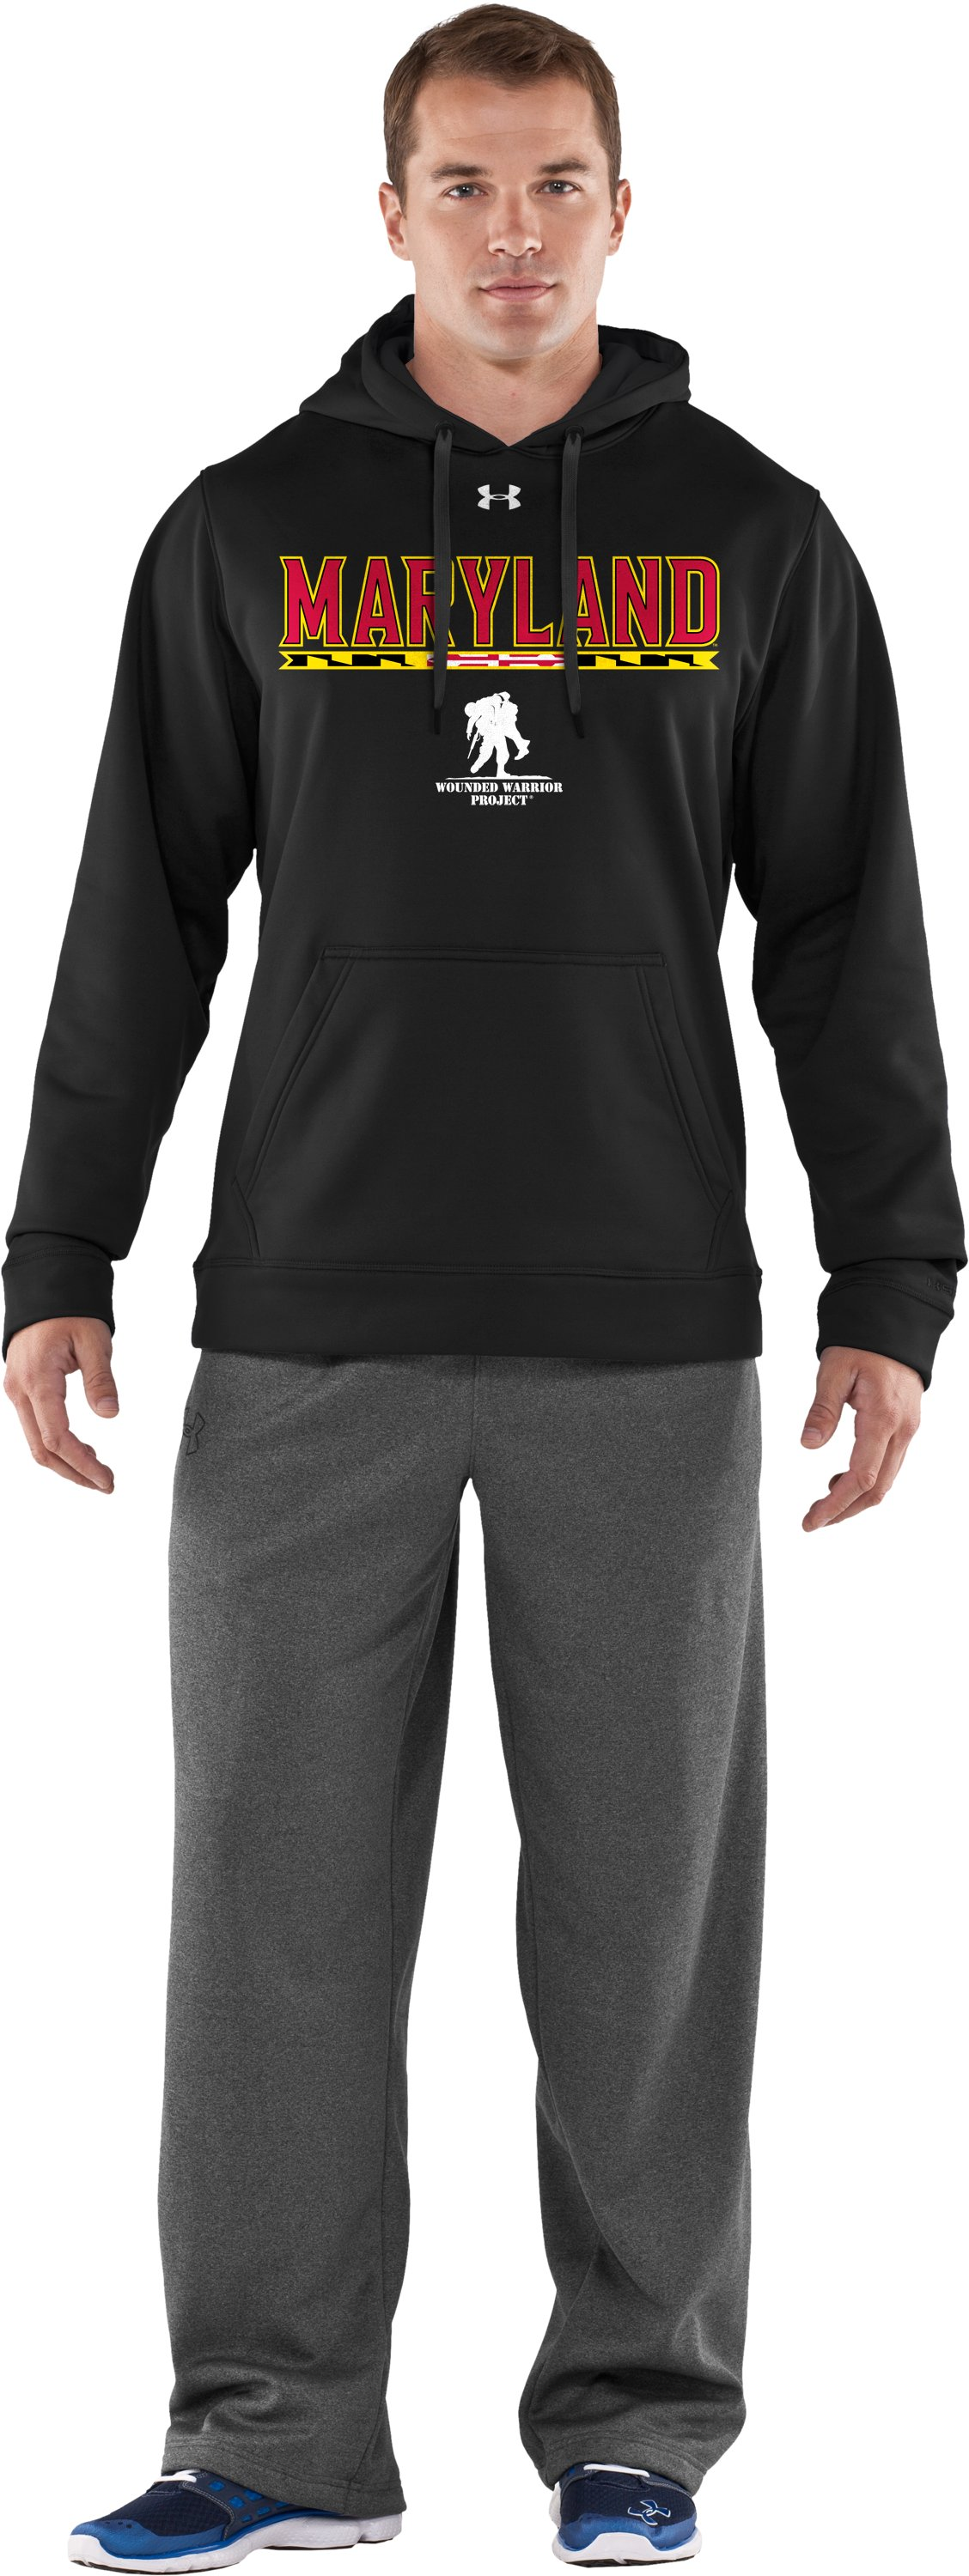 Men's WWP Armour® Fleece Maryland Hoodie, Black